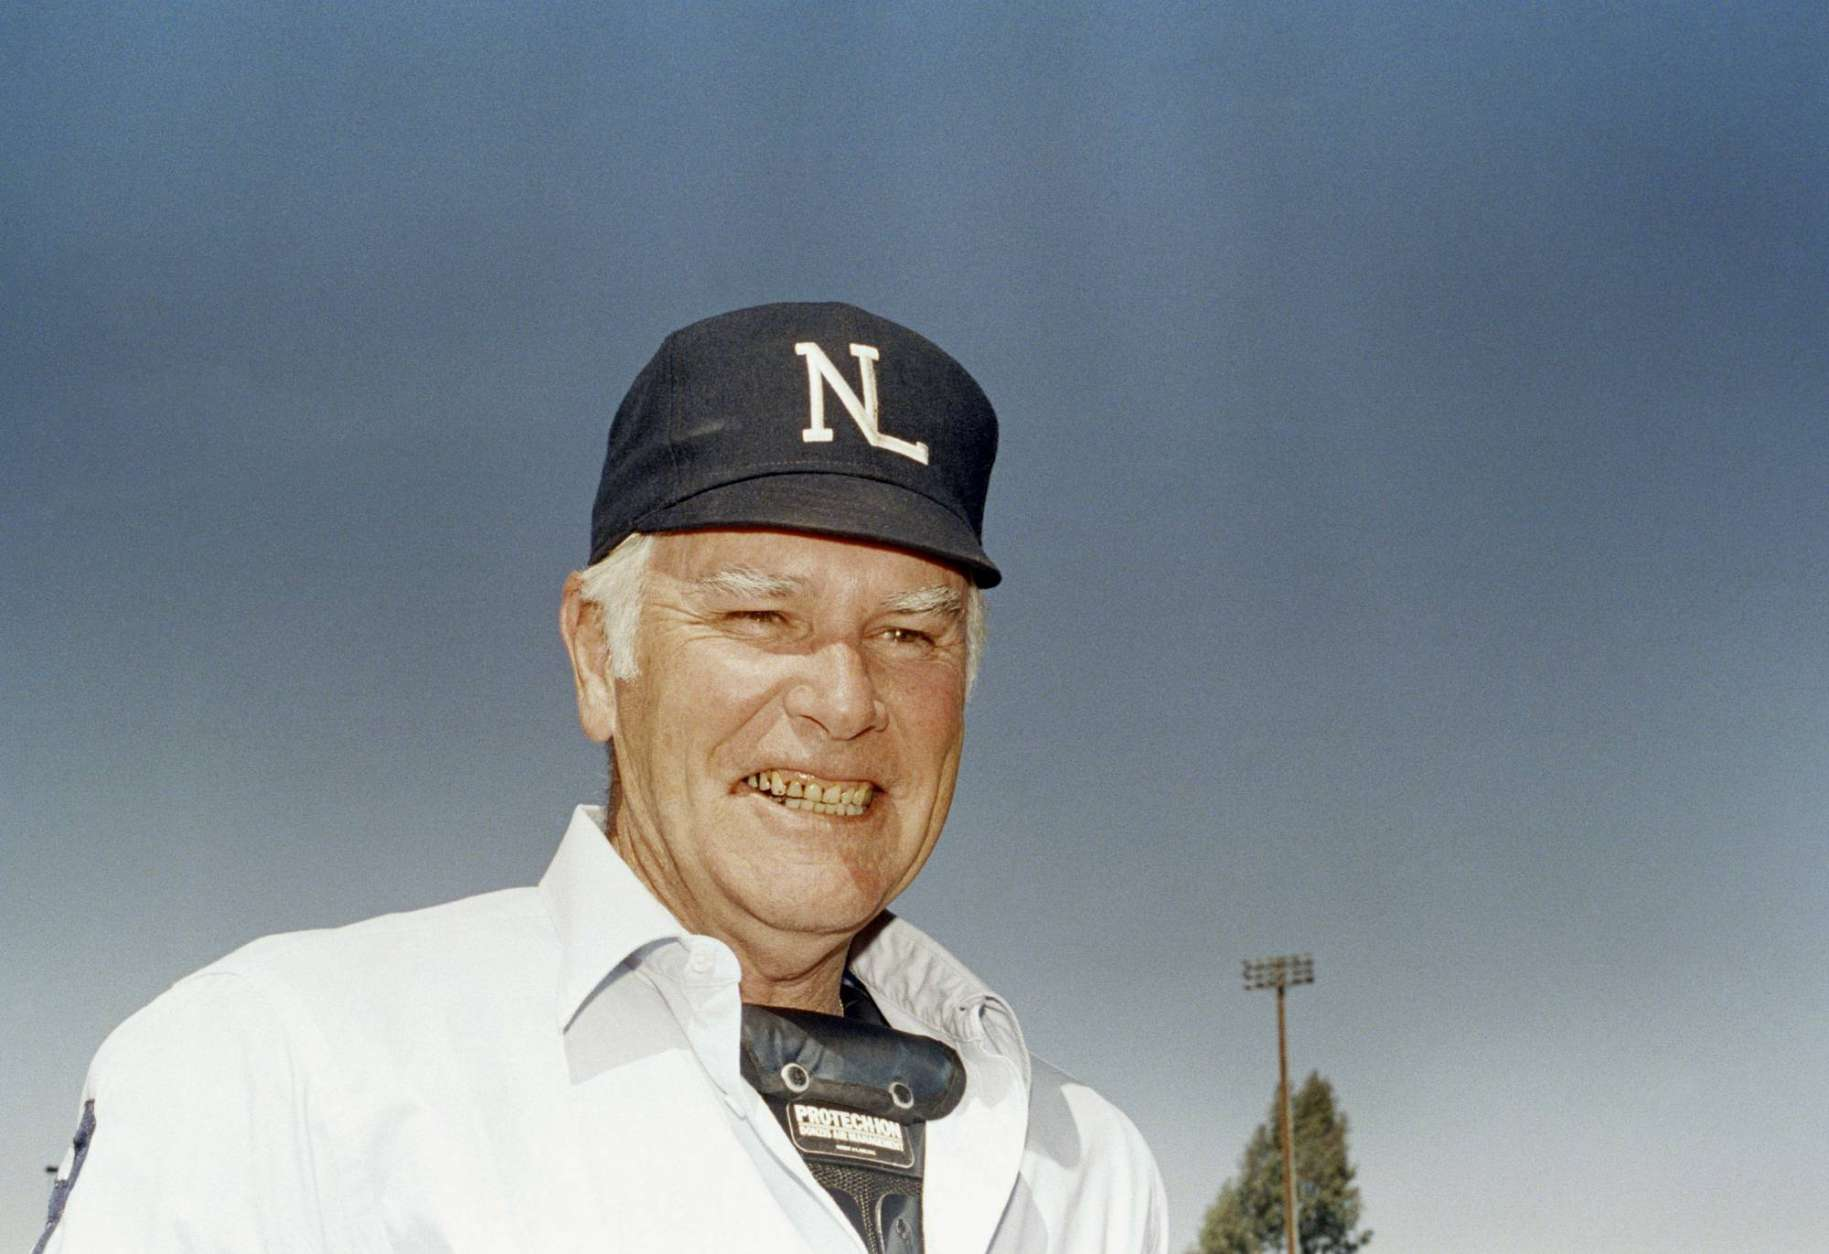 FILE- This 1989, file photo shows National League umpire Doug Harvey. Harvey, one of 10 umpires enshrined in the baseball Hall of Fame, died Saturday, Jan. 13, 2018. He was 87. (AP Photo, File)